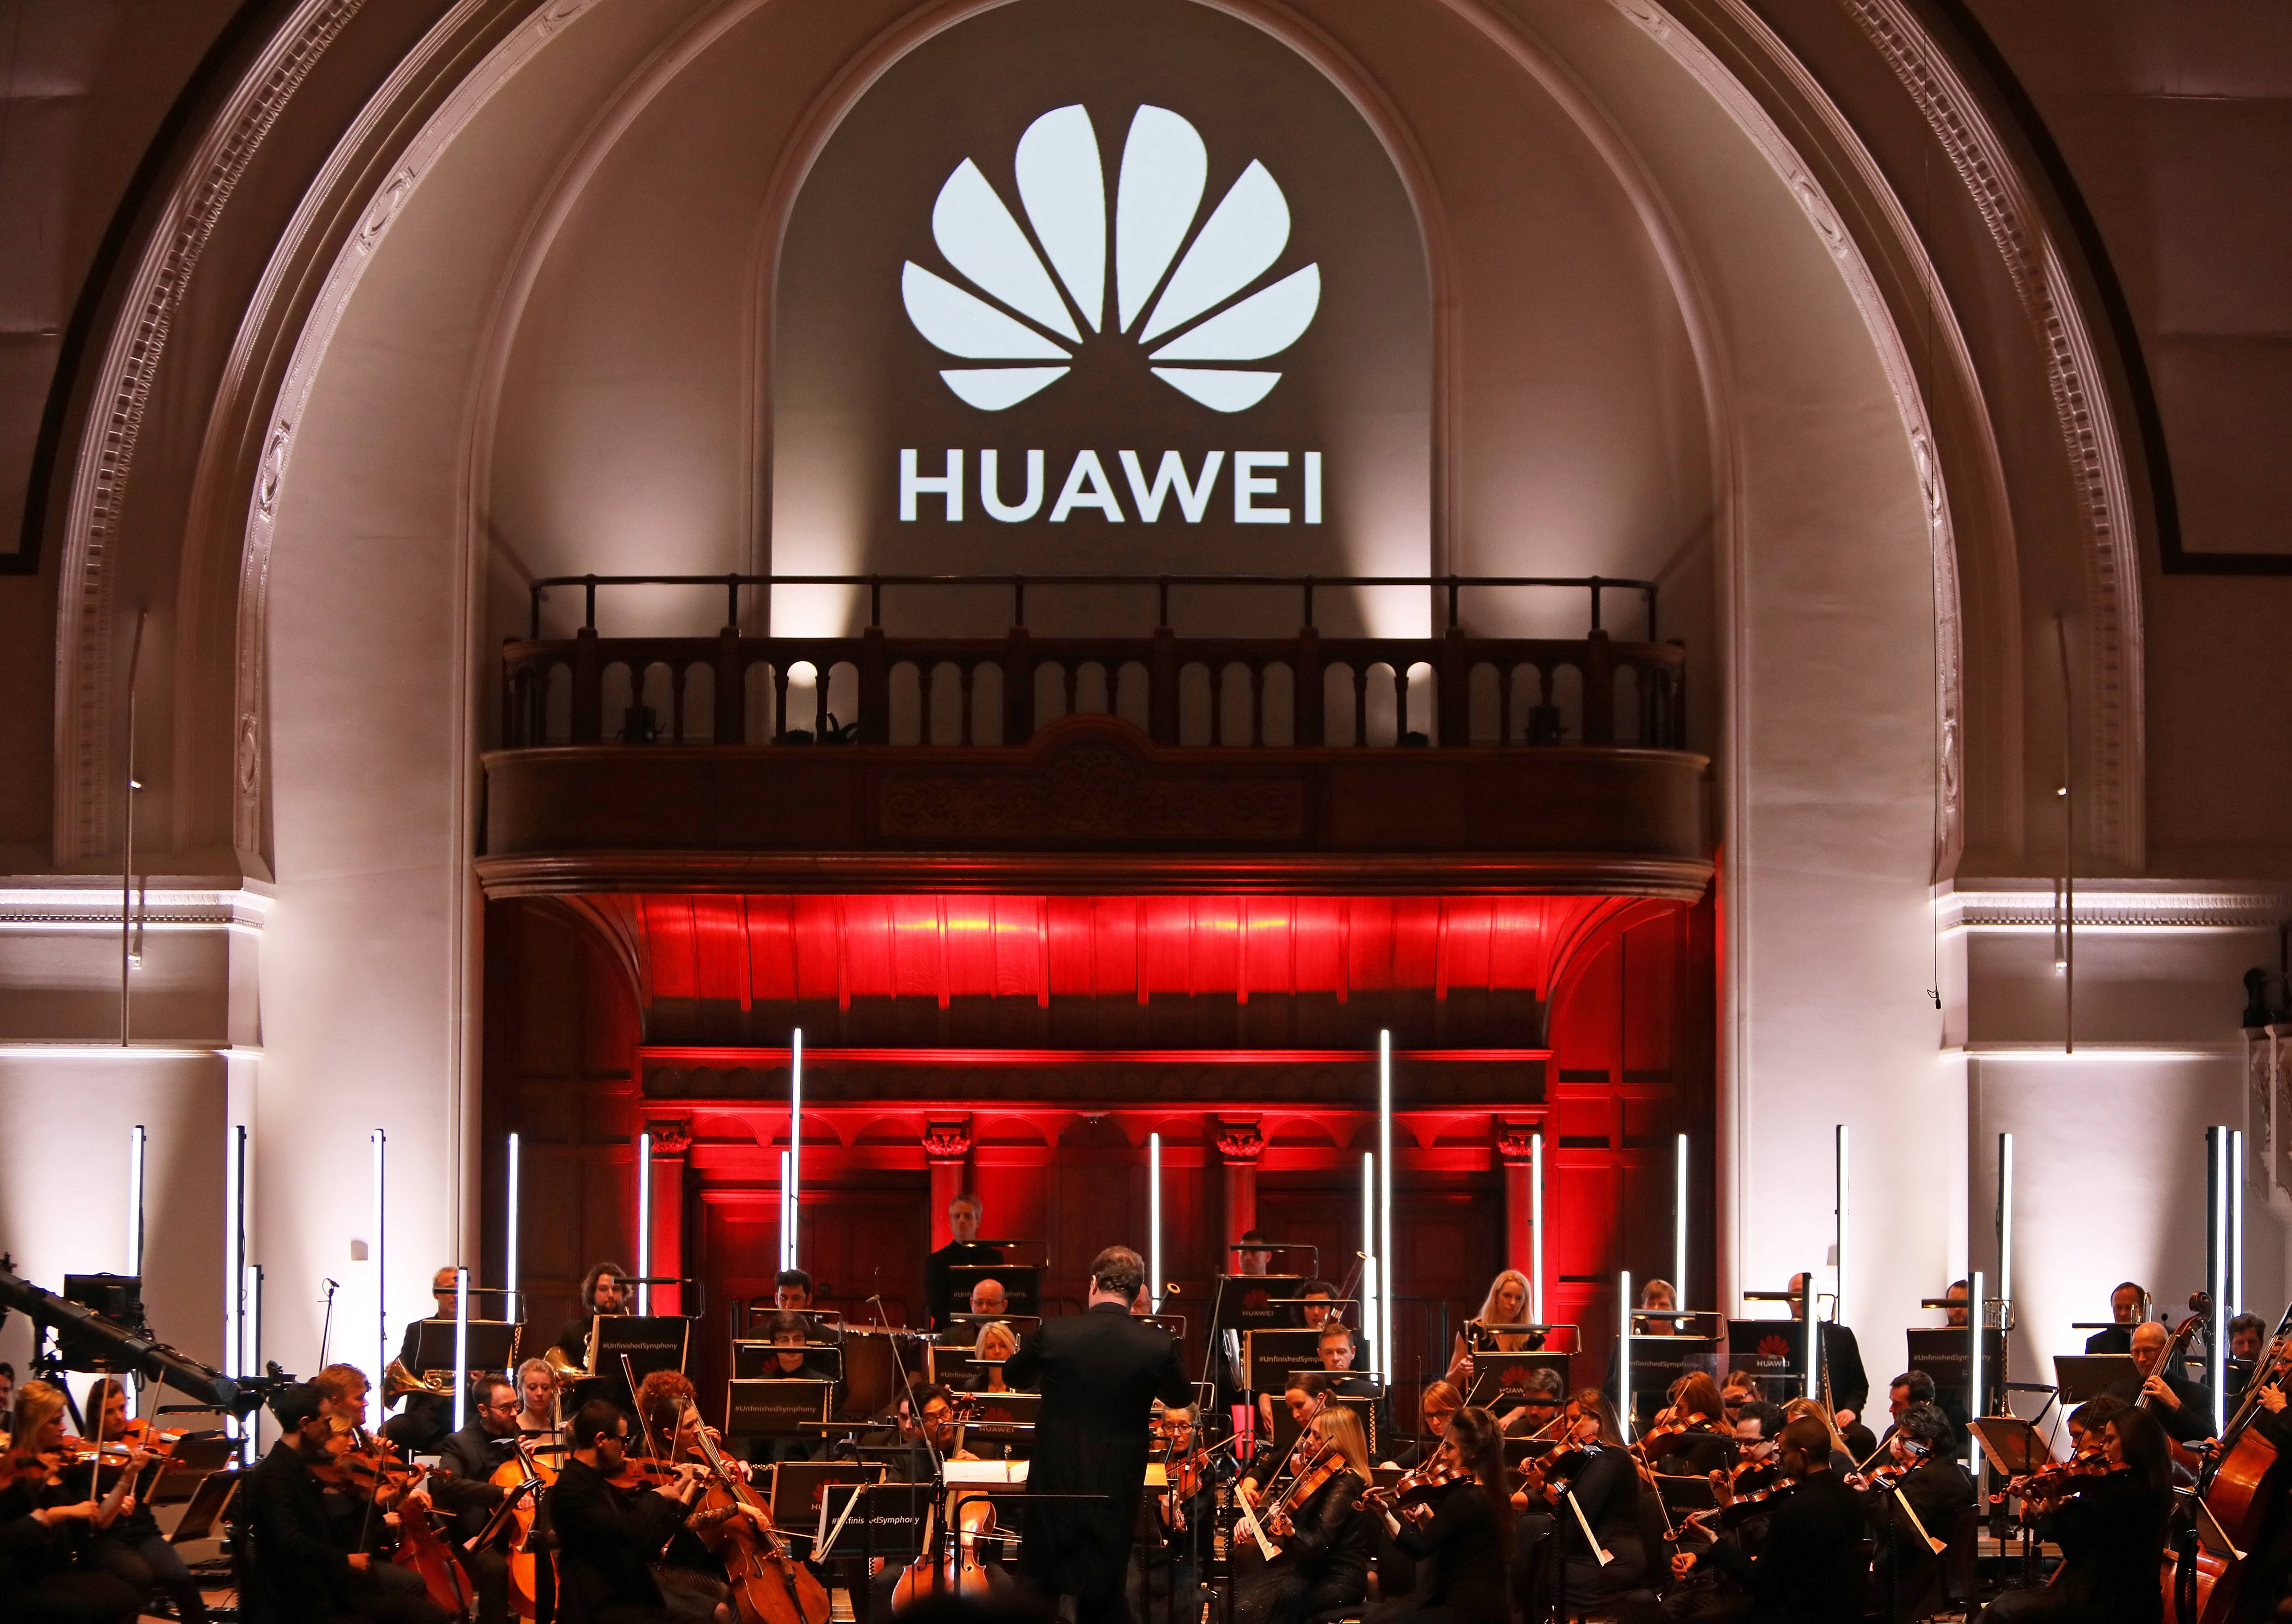 Huawei Uses The Power Of Al To Push The Boundaries Of What Is Humanly Possible To Finish Schubert's Unfinished Symphony